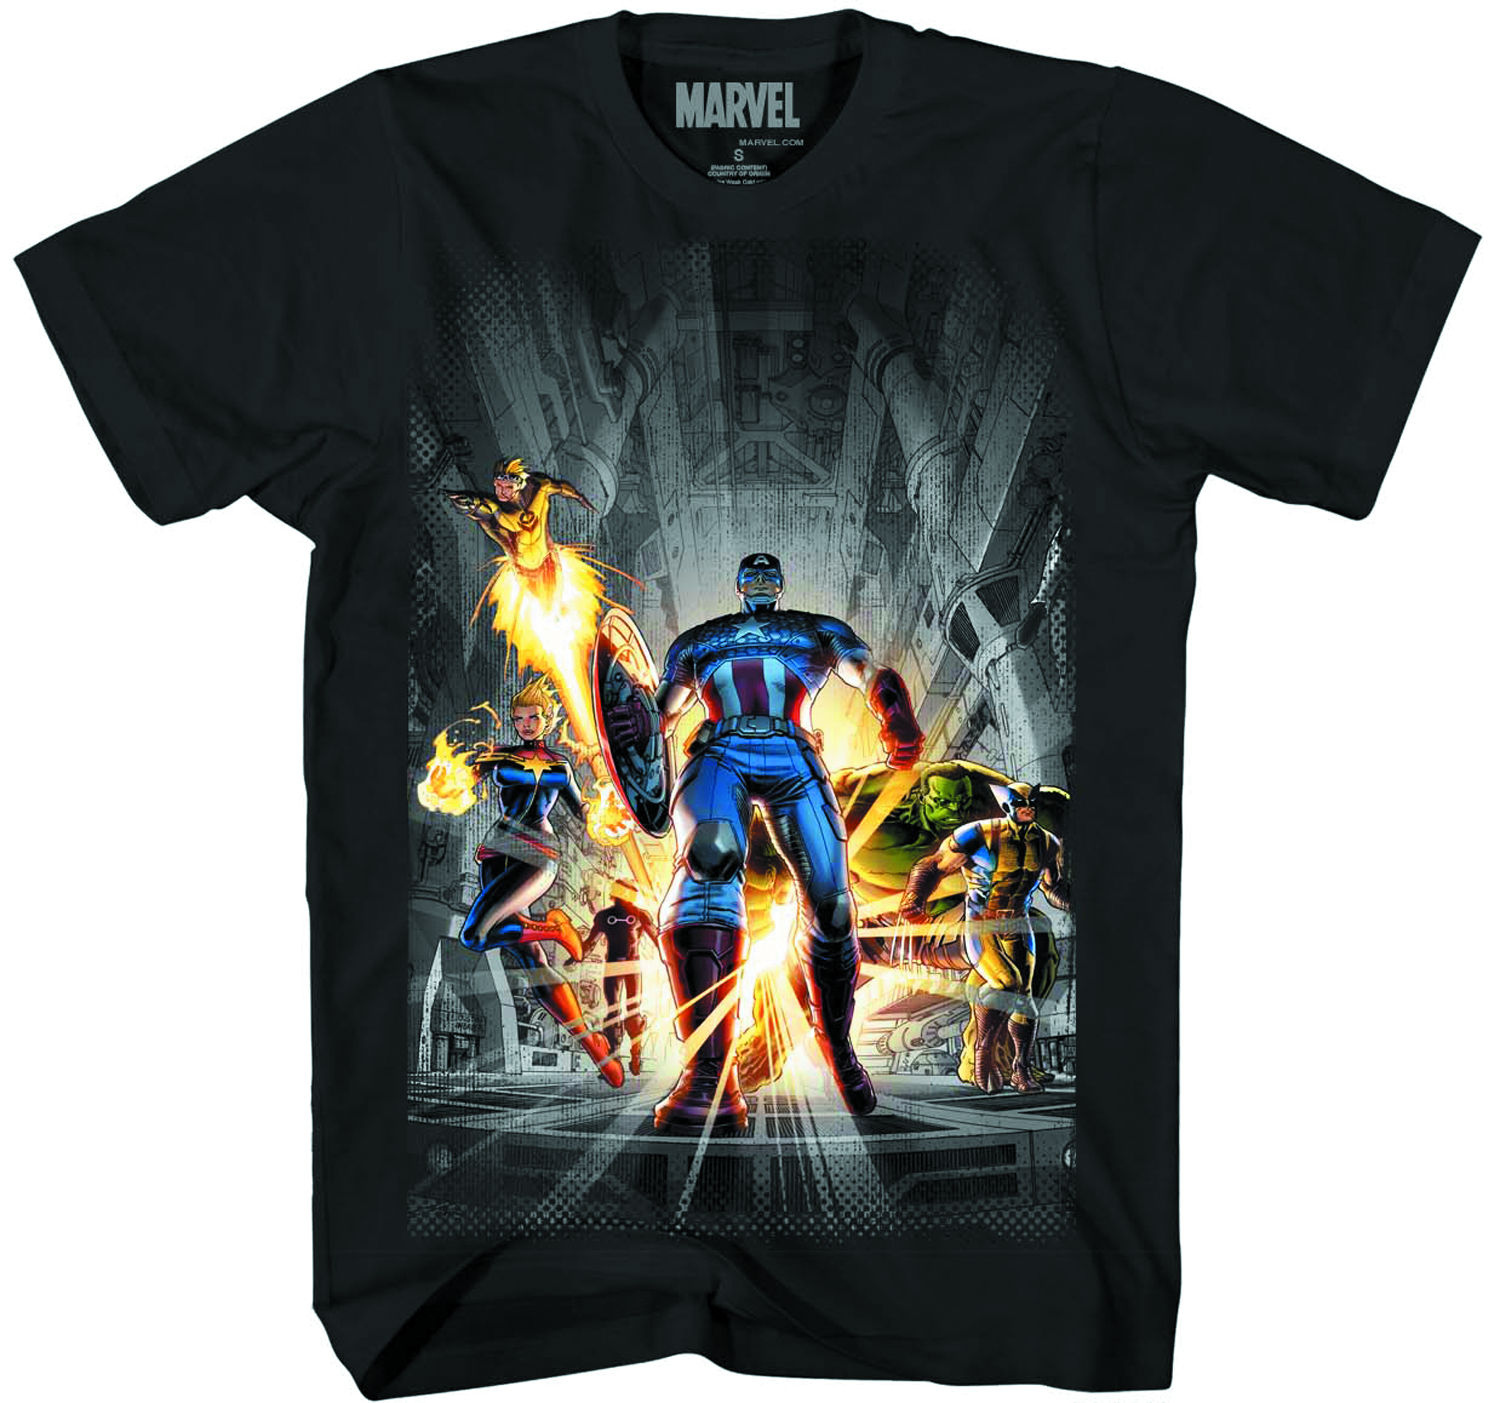 MARVEL HEROES BIG TEAM PX BLK T/S LG